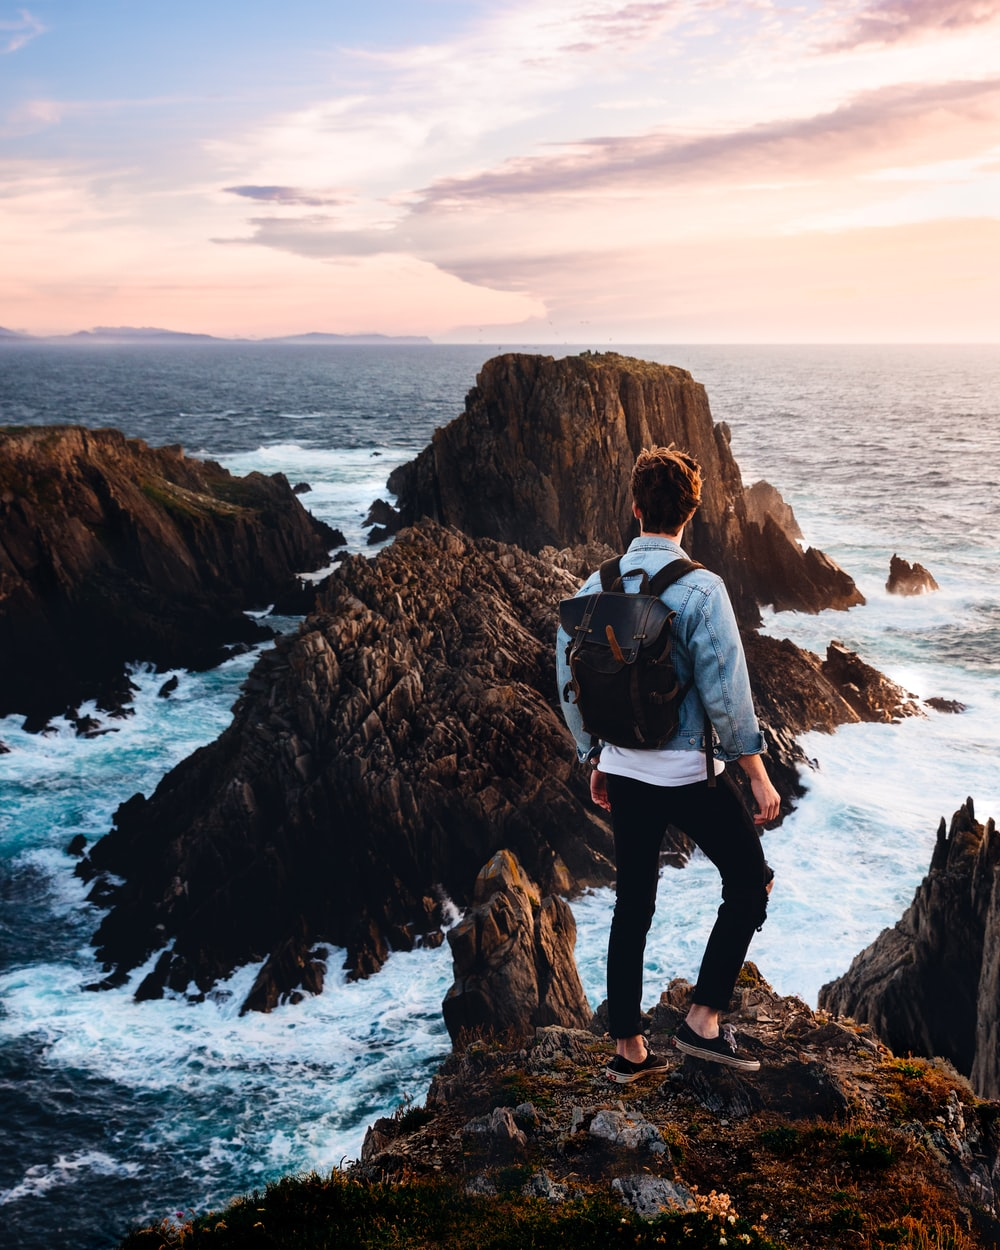 man standing near cliff looking at body of water during daytime